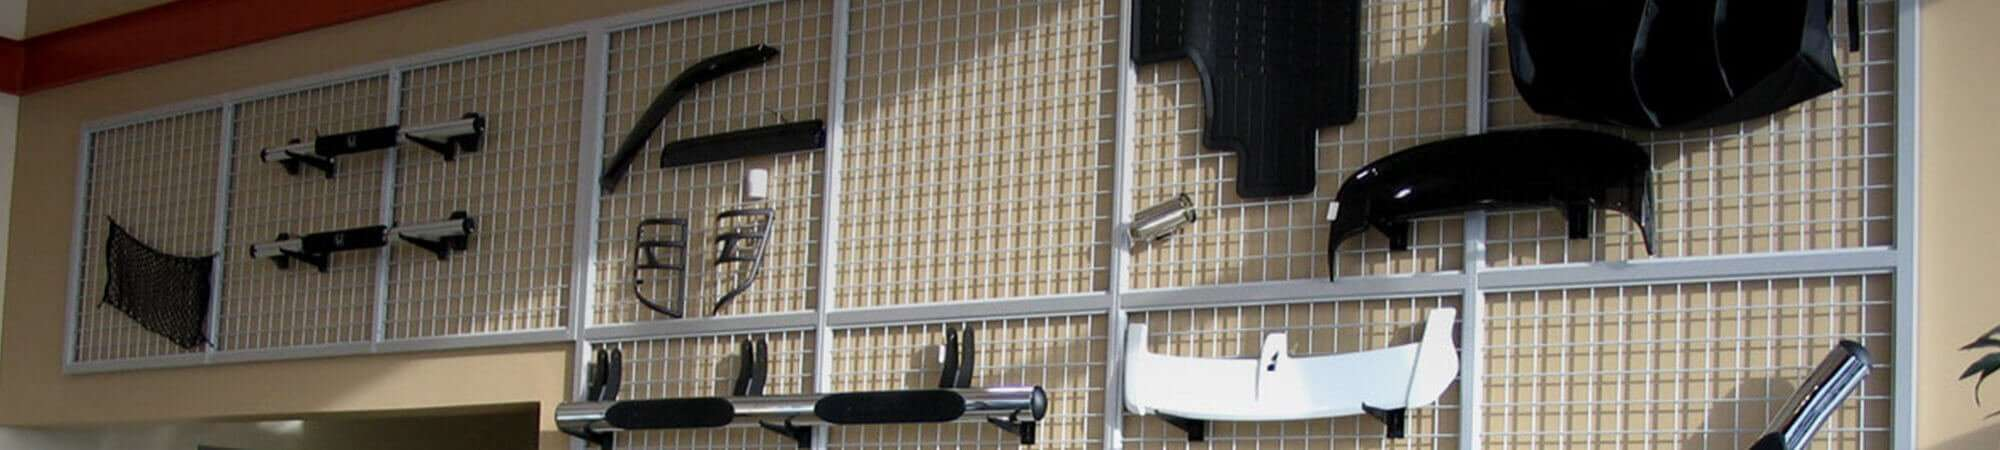 Gridwall Display Systems